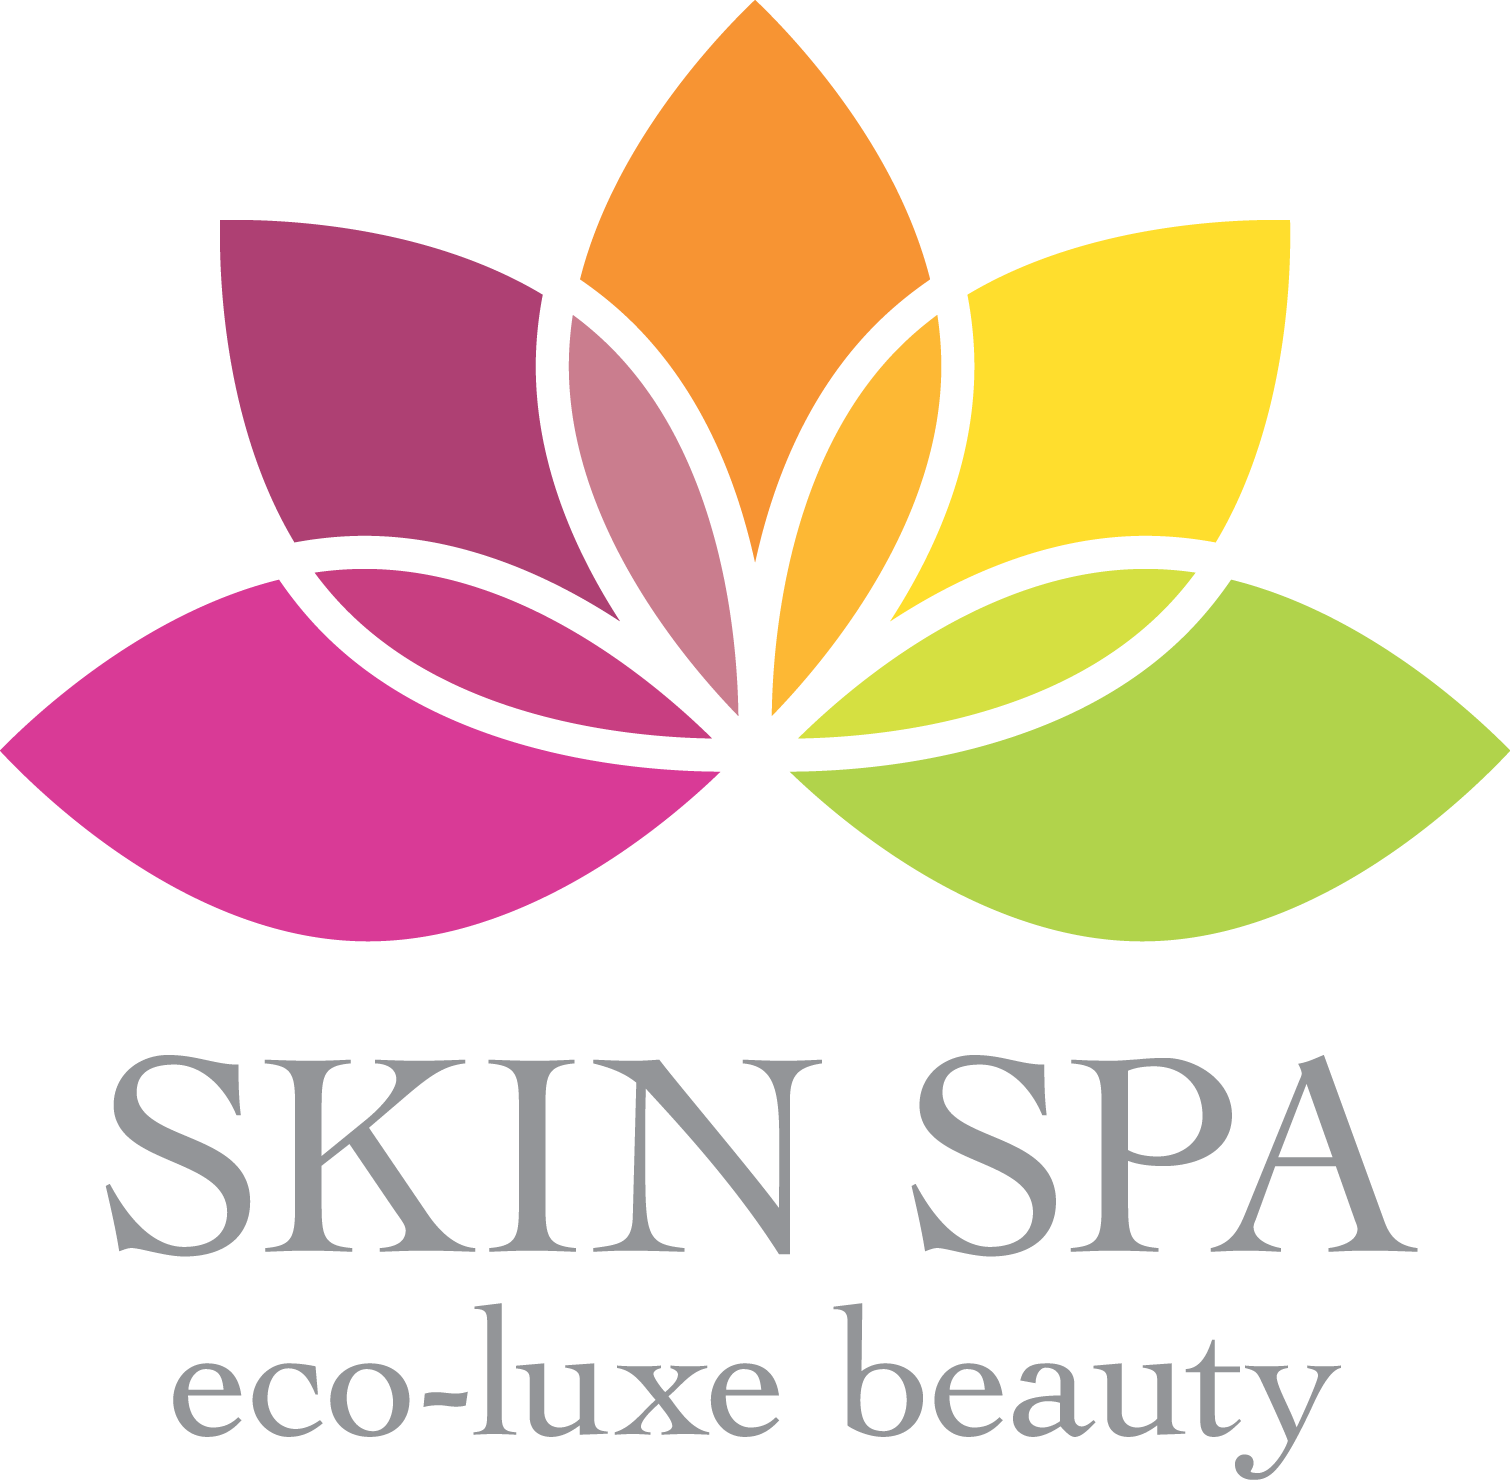 skin spa eco luxe beauty jacksonville beach